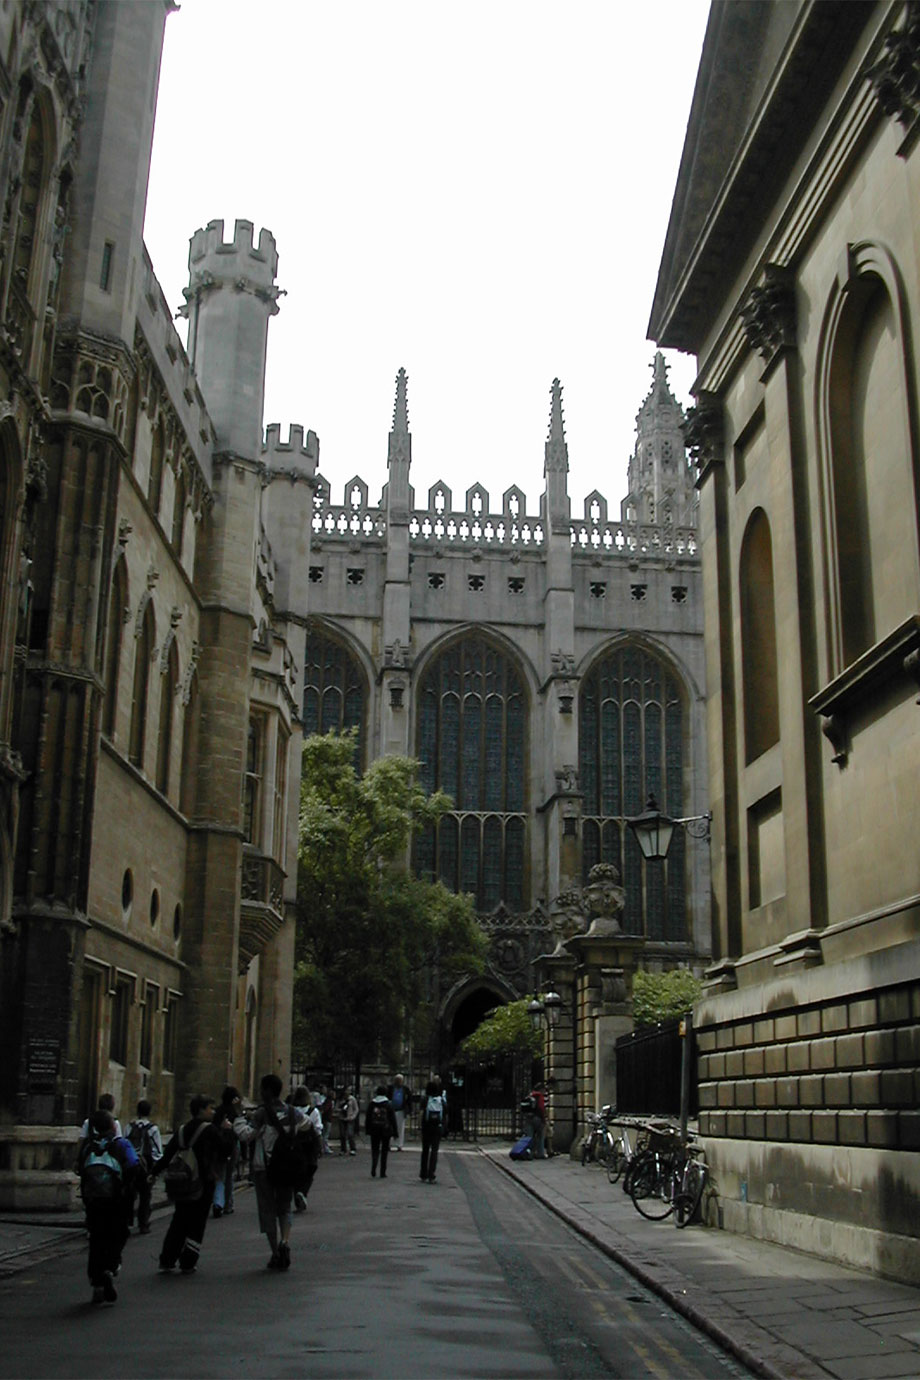 The view down Trinity Lane towards King's College Chapel with Clare College Chapel to the right.